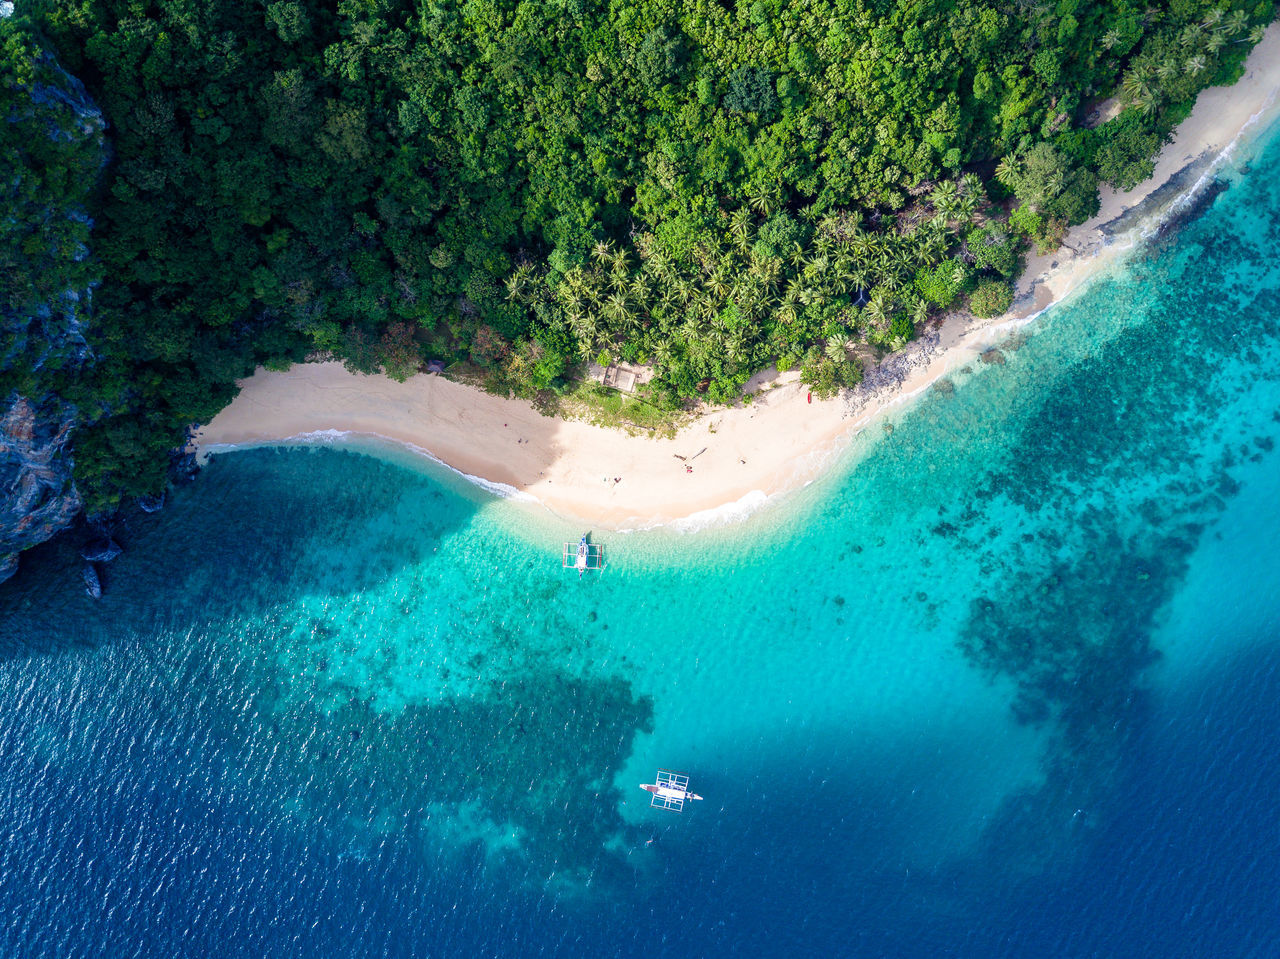 Beauty In Nature Day Drone  Dronephotography Eyeem Philippines Limestone Nature No People Outdoors Palawan Philippines Scenics Sky Swimming Travel Destinations Tree UnderSea Underwater Water